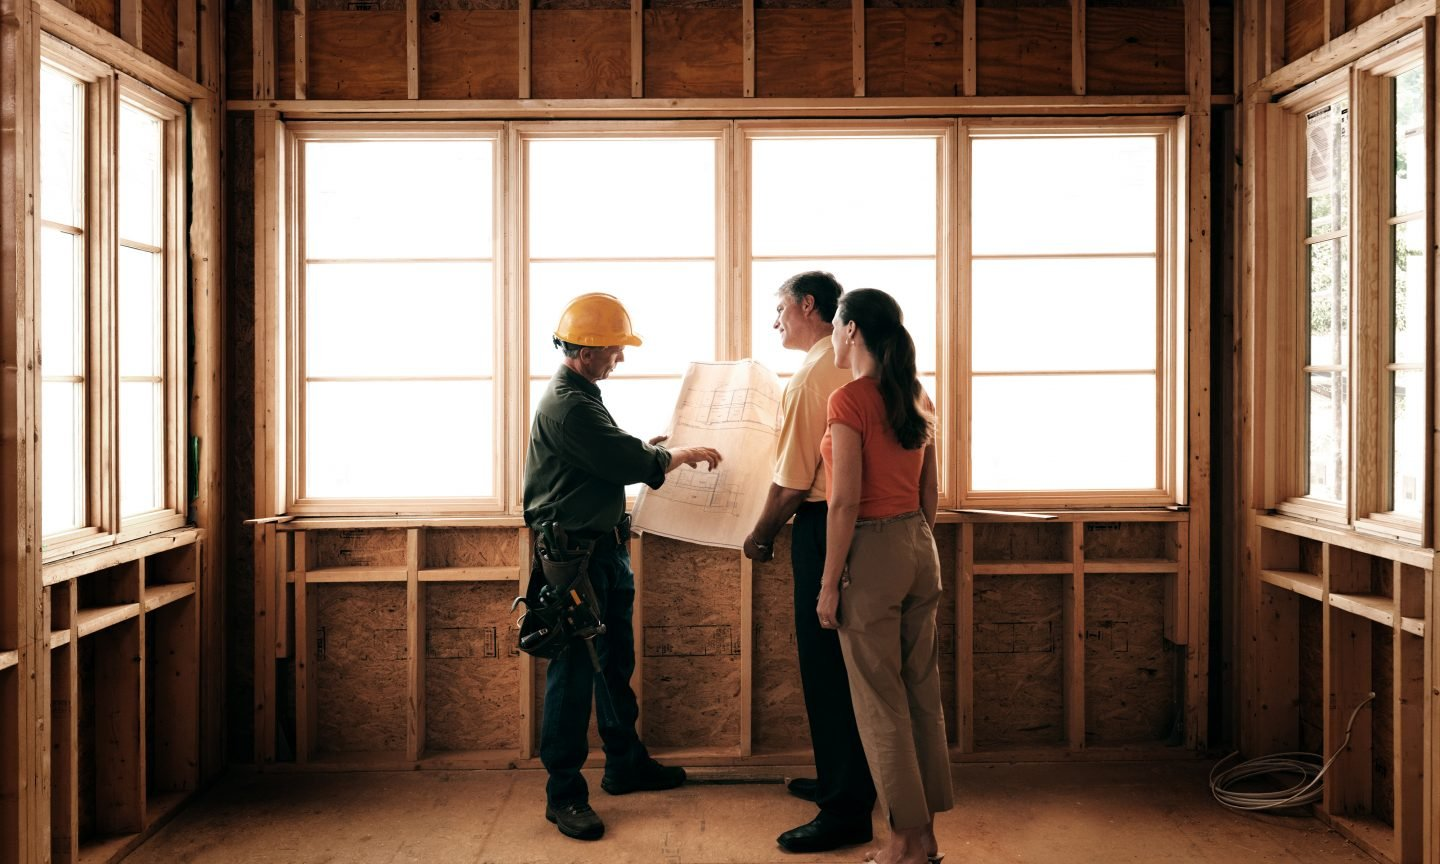 How to Get a Construction Loan to Build a Home - NerdWallet